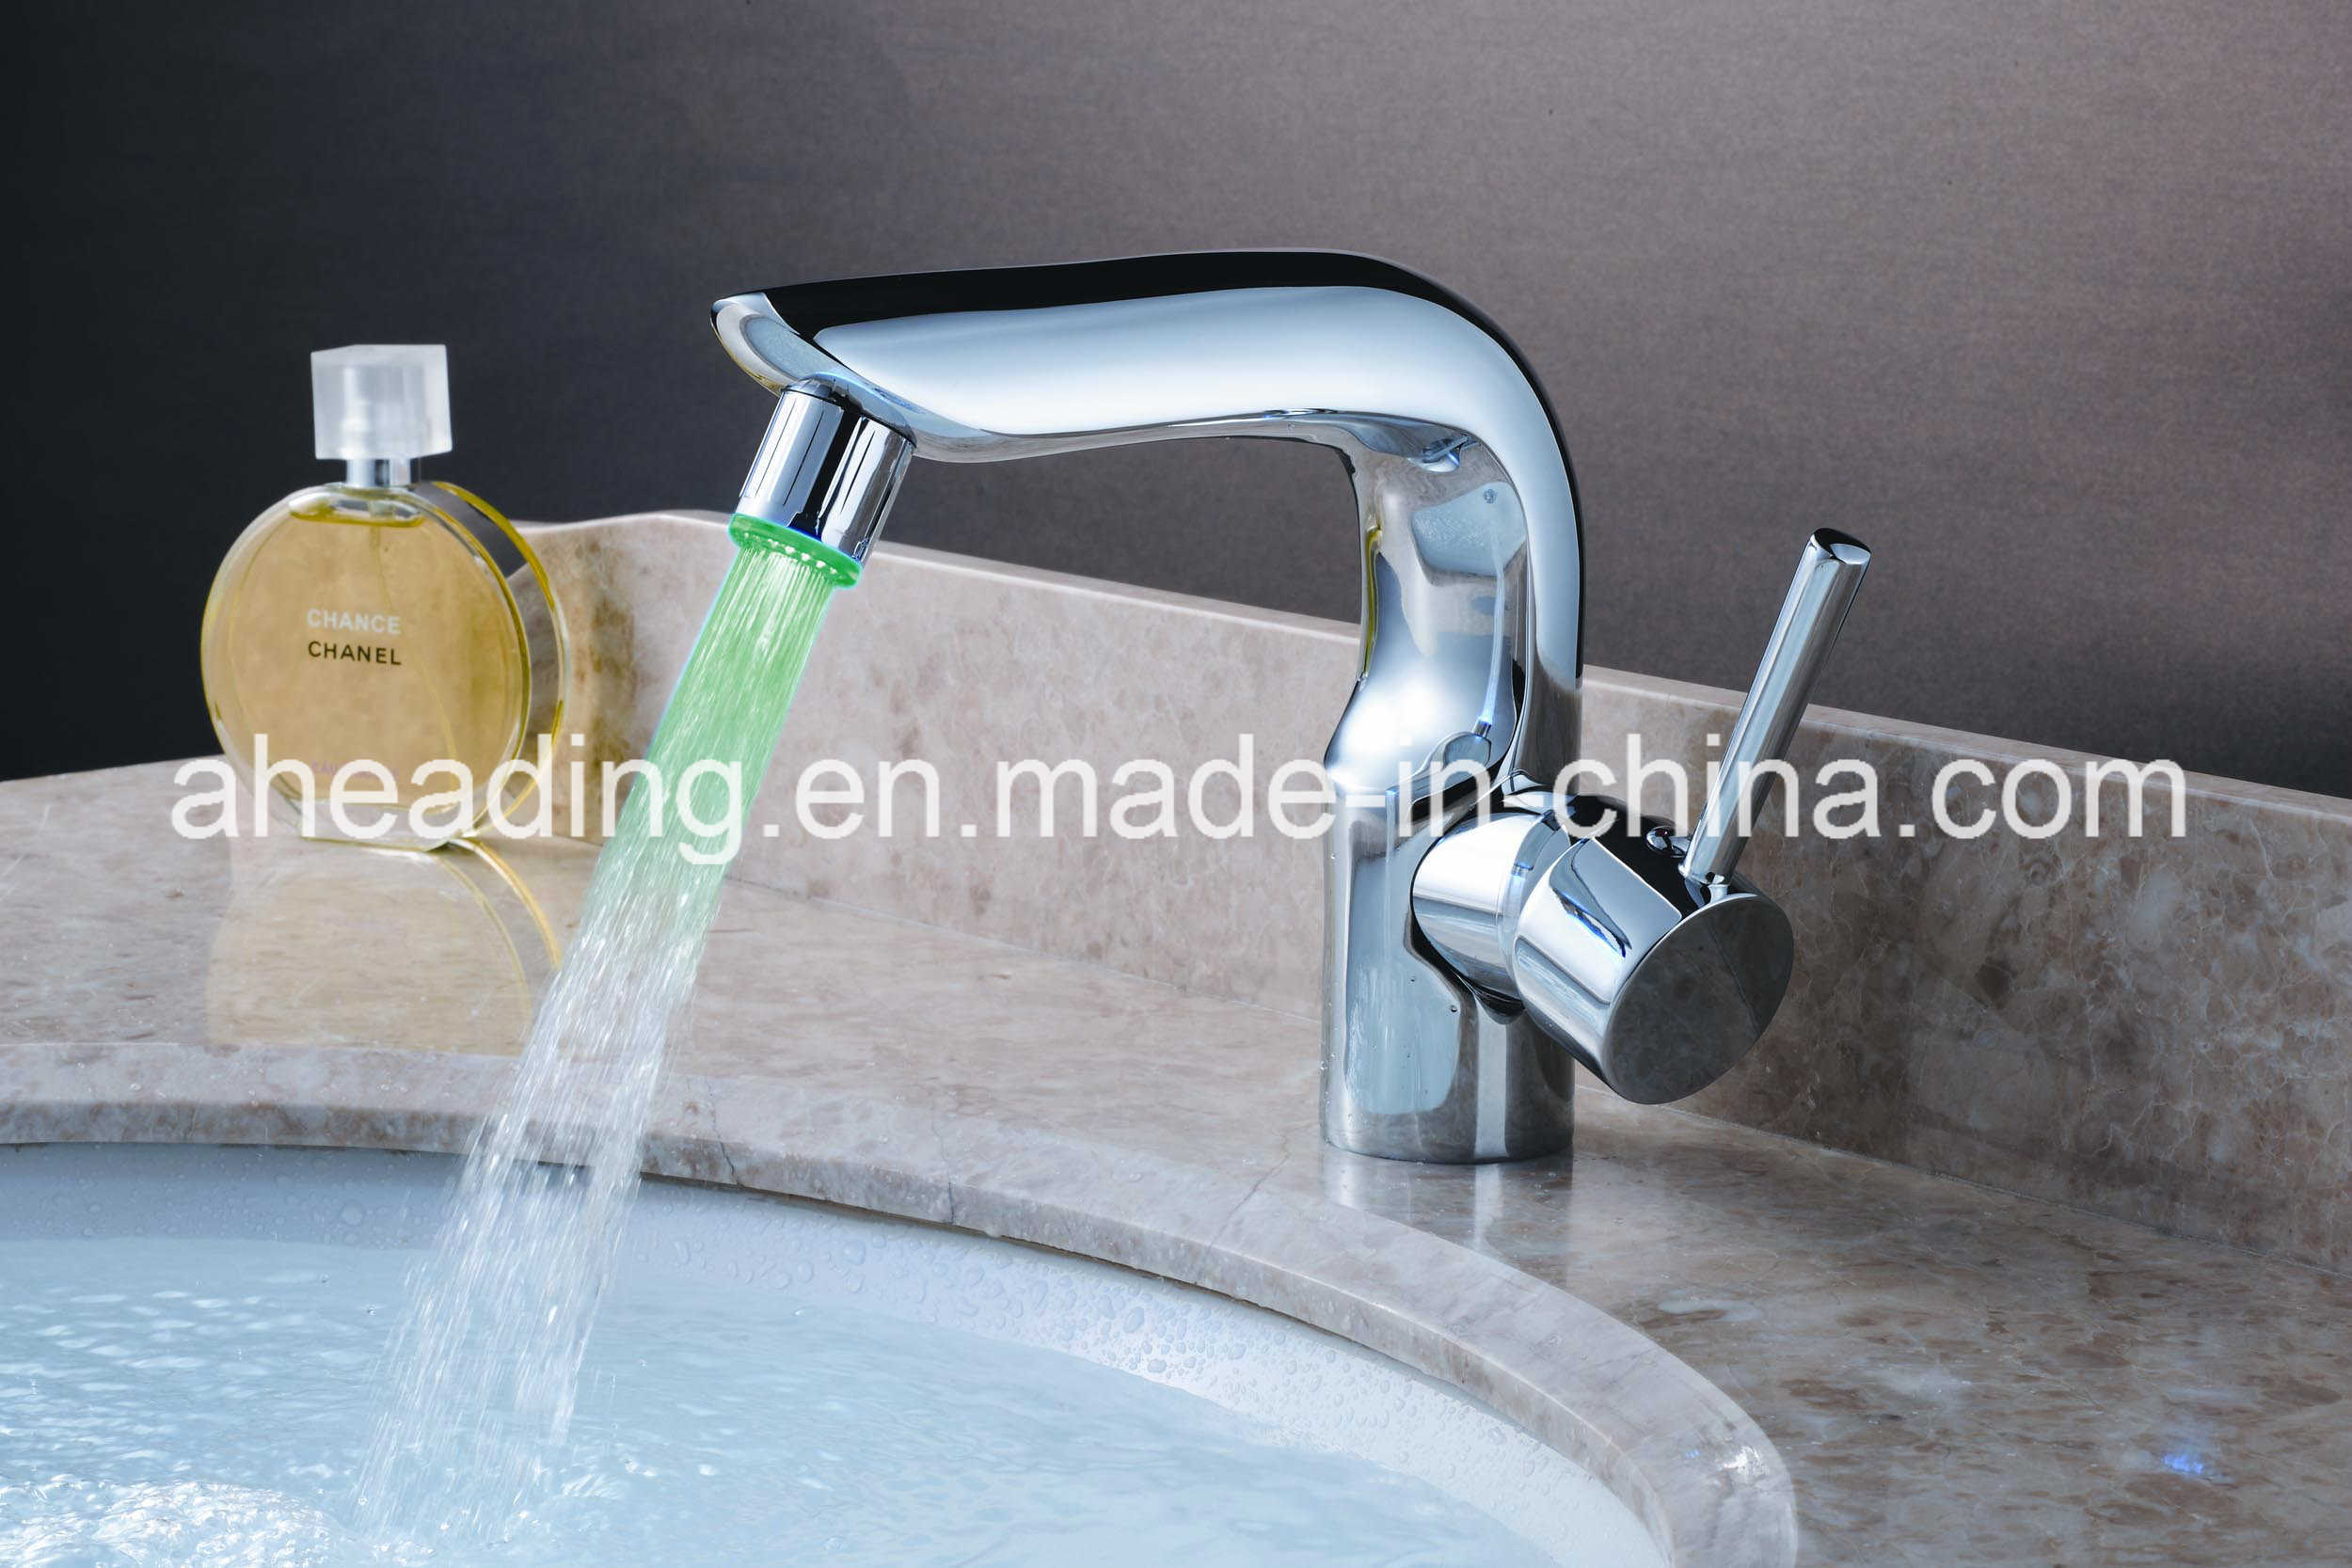 LED Light Basin Faucet (SW-A107)